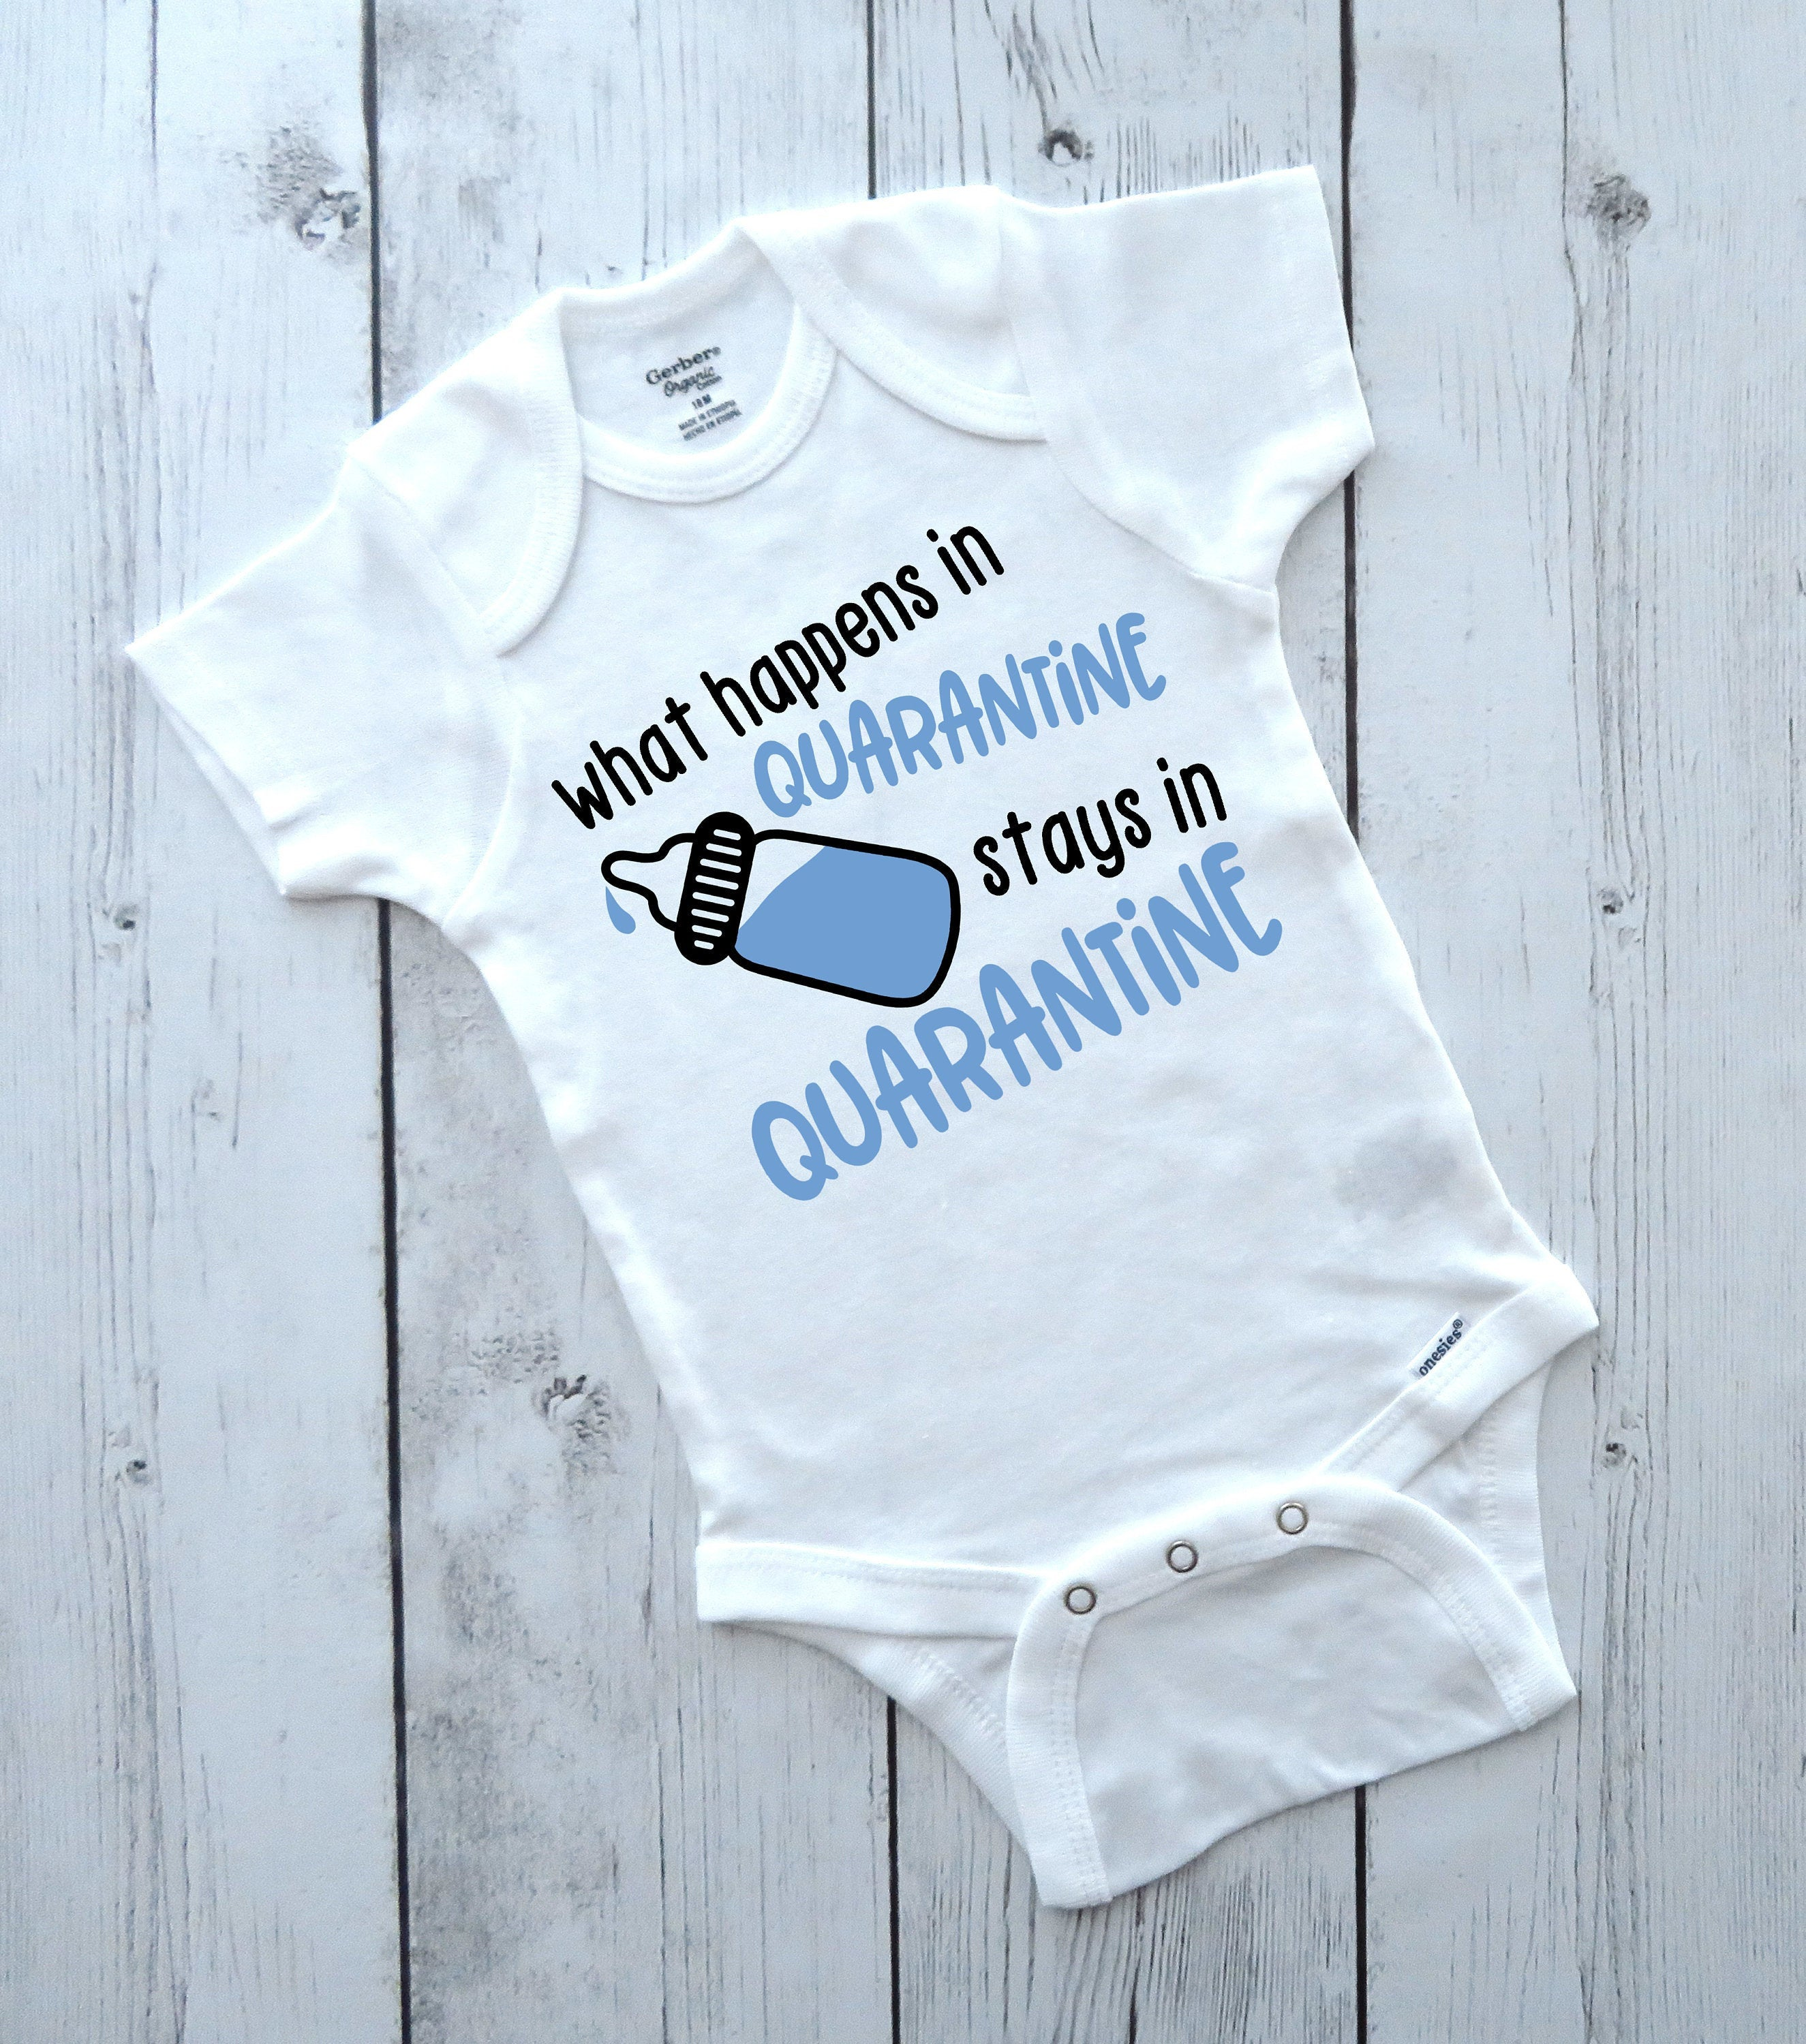 What happens in Quarantine stays in Quarantine - 1st quarantine bodysuit, funny baby onesies, baby boy shower gift, quarantine 2020